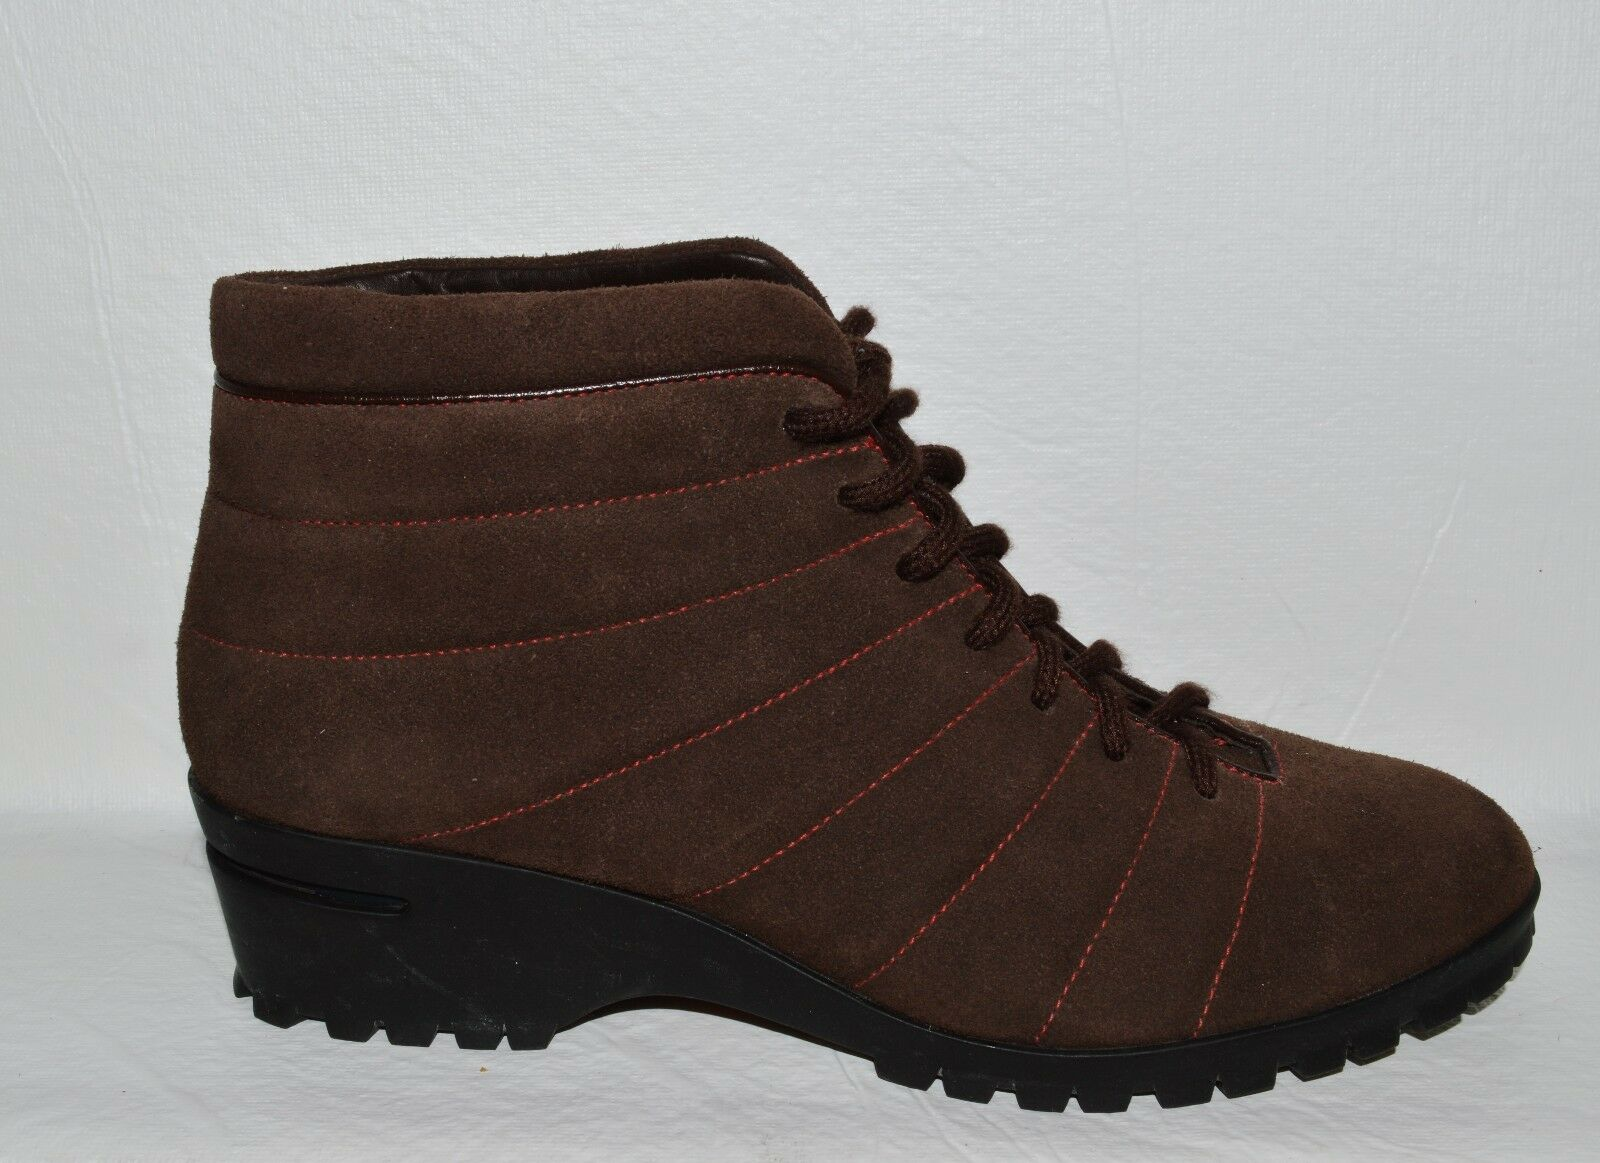 COLE HAAN AIR SZ 7.5 M BROWN SUEDE LEATHER LACE UP ANKLE BOOTS BOOTIES